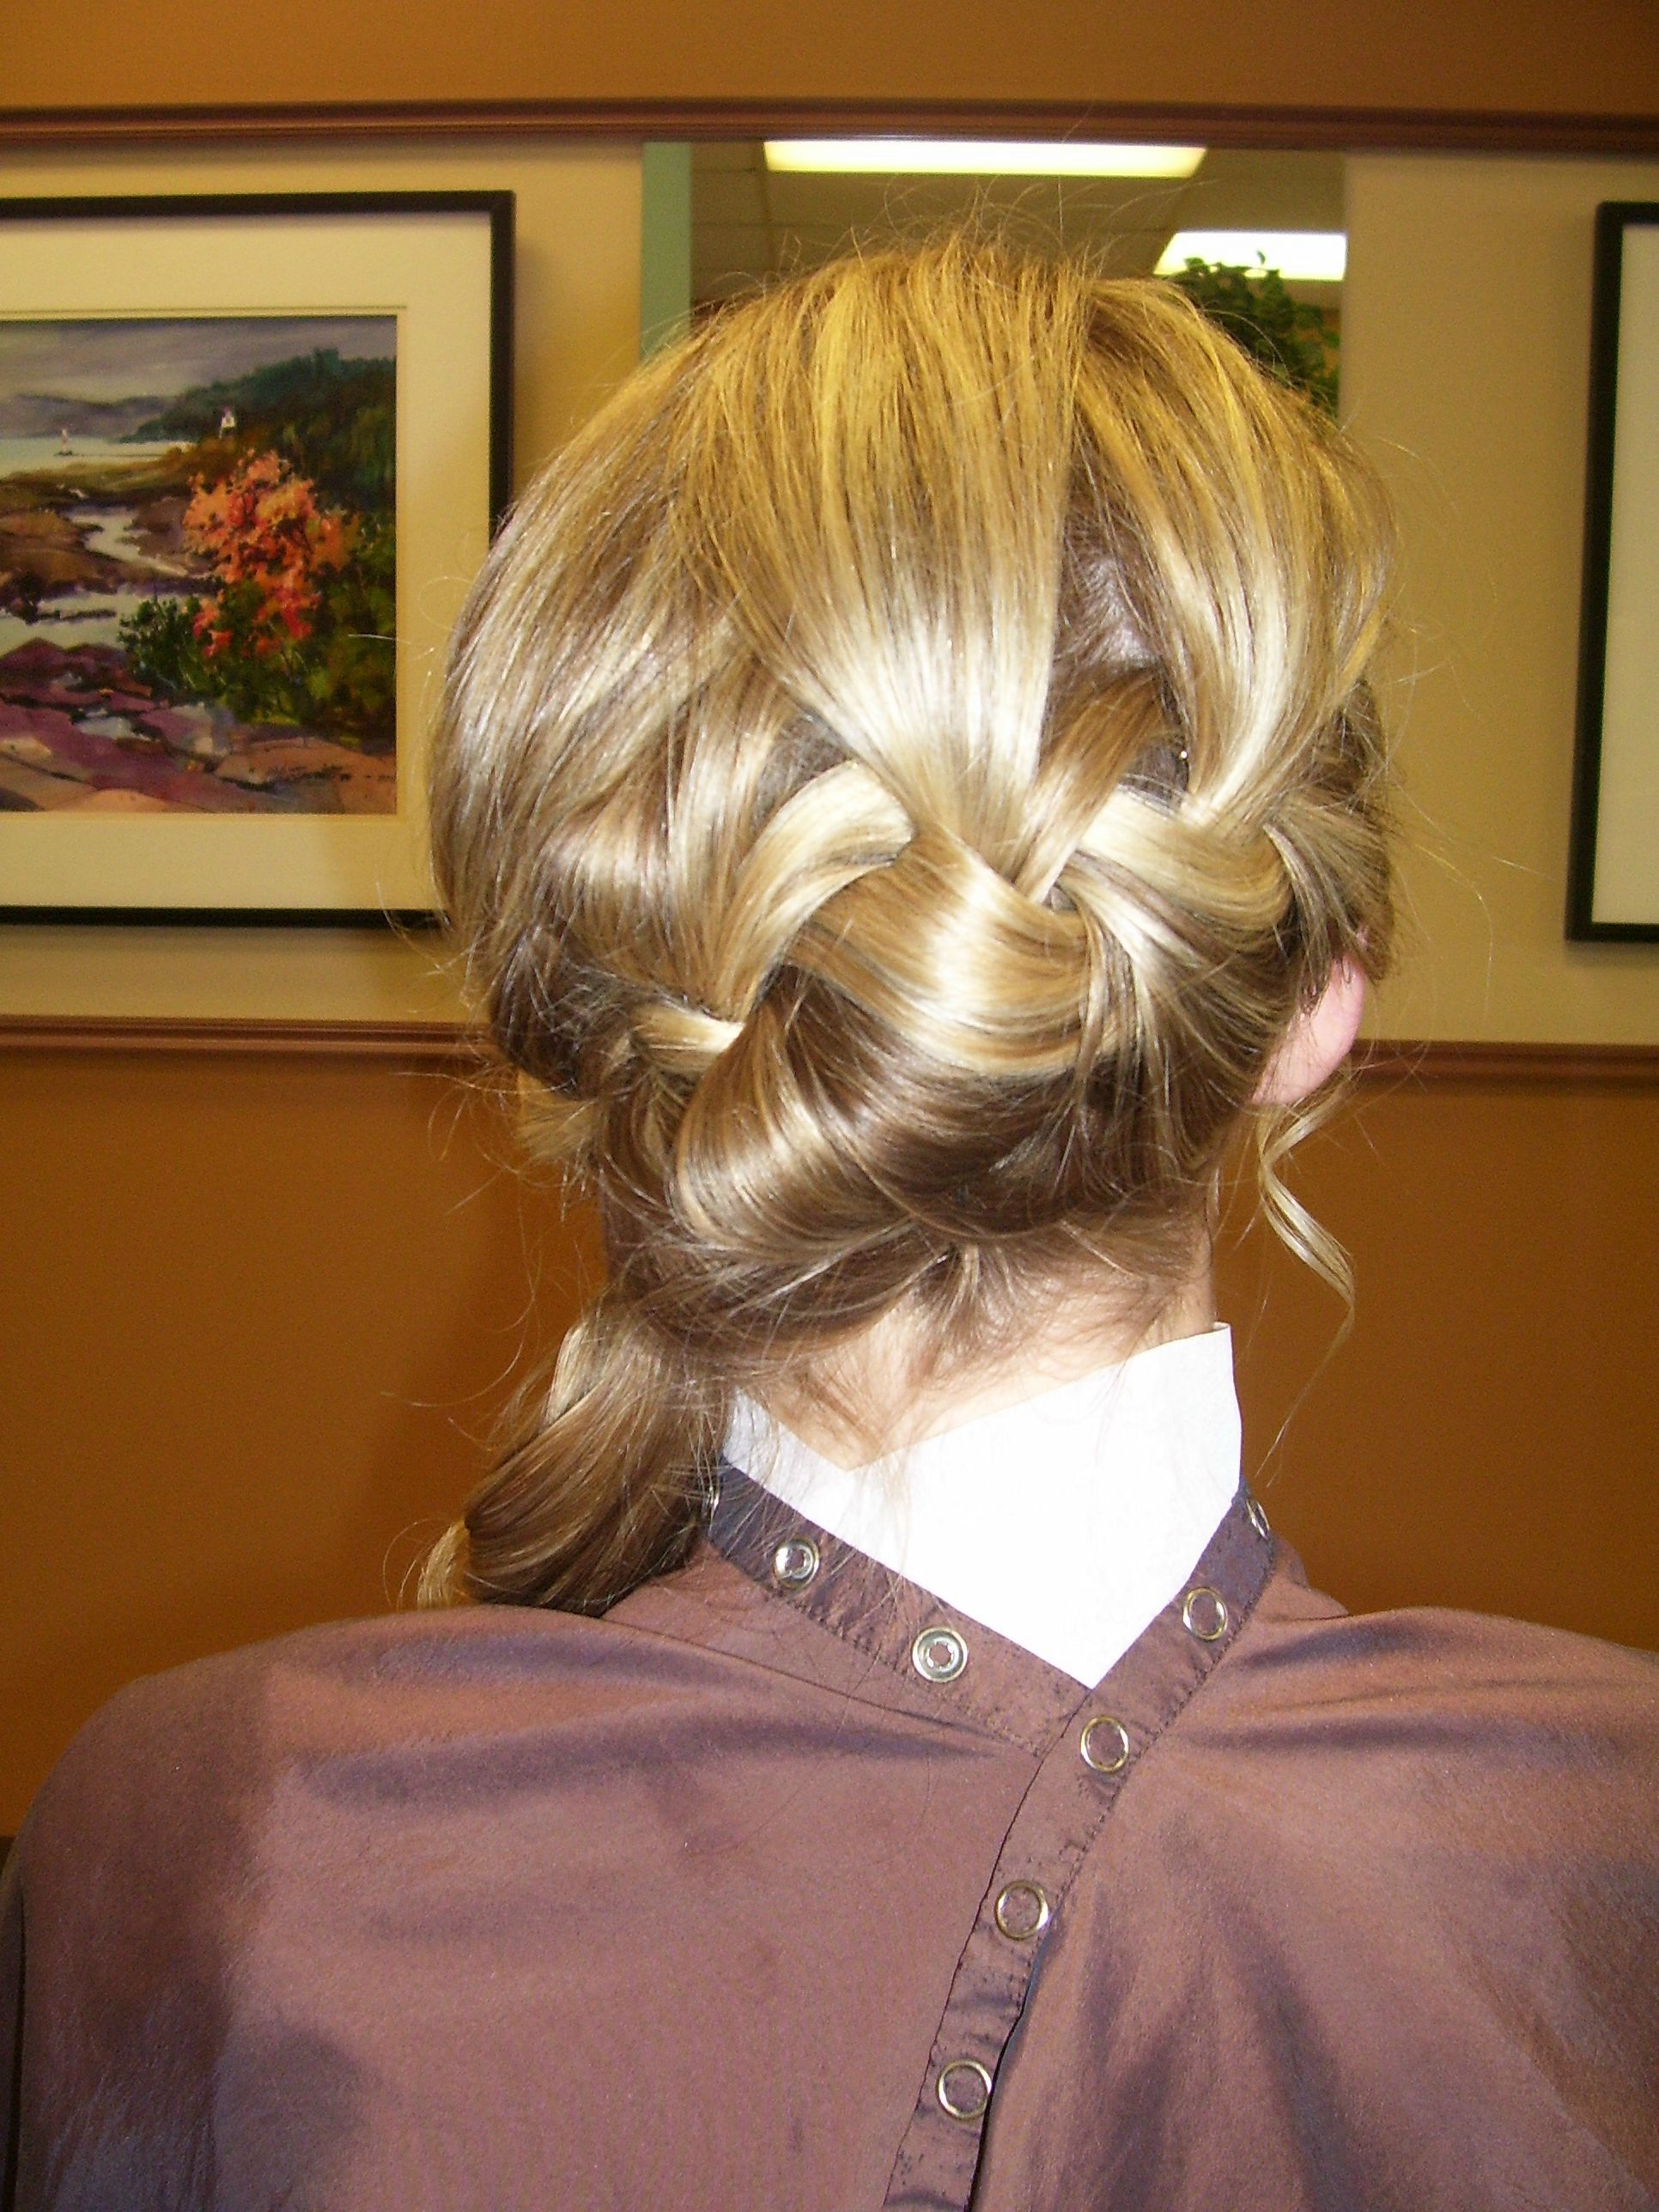 Blonde loose braid side pony for prom Hair by Annifaye  Hair love